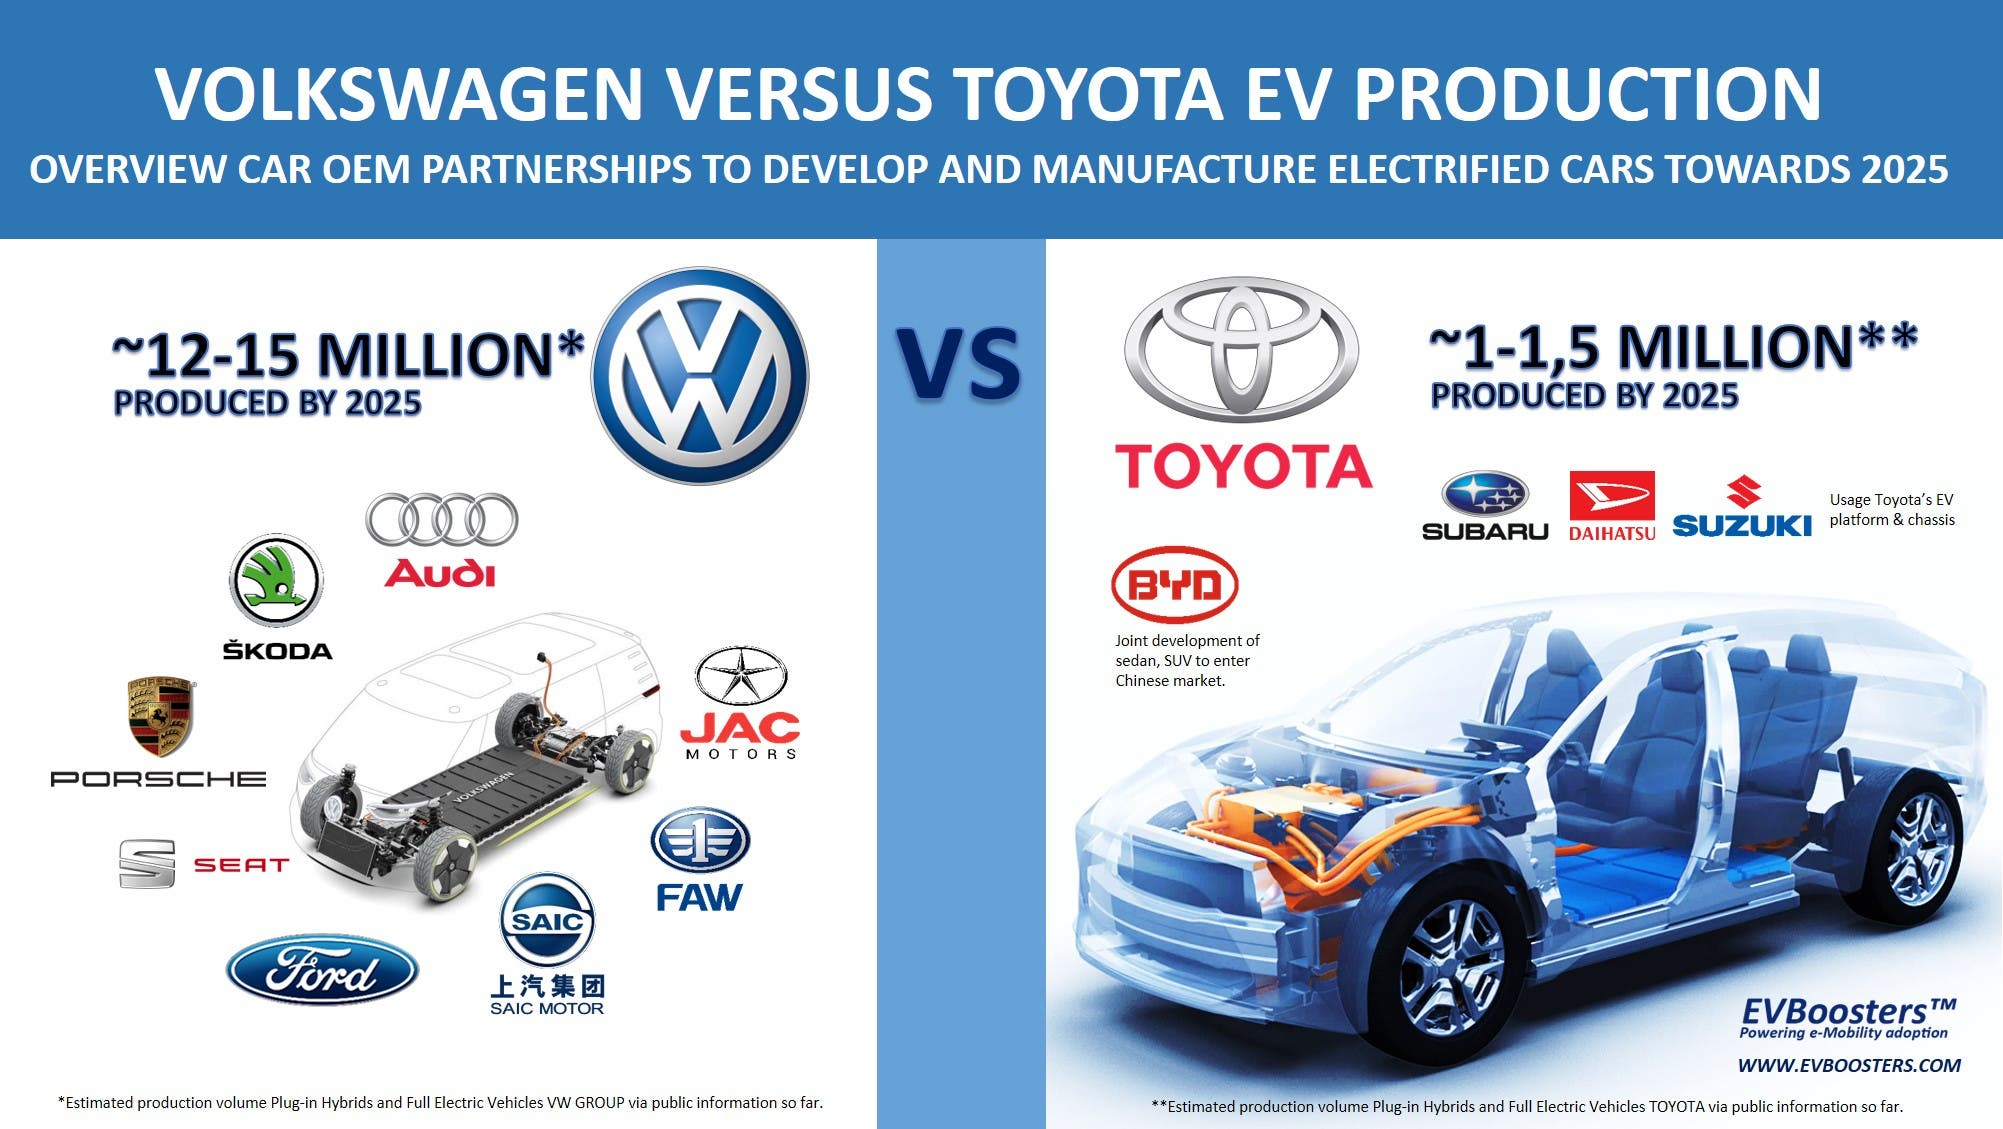 The EV Future — Volkswagen vs. Toyota In One Picture